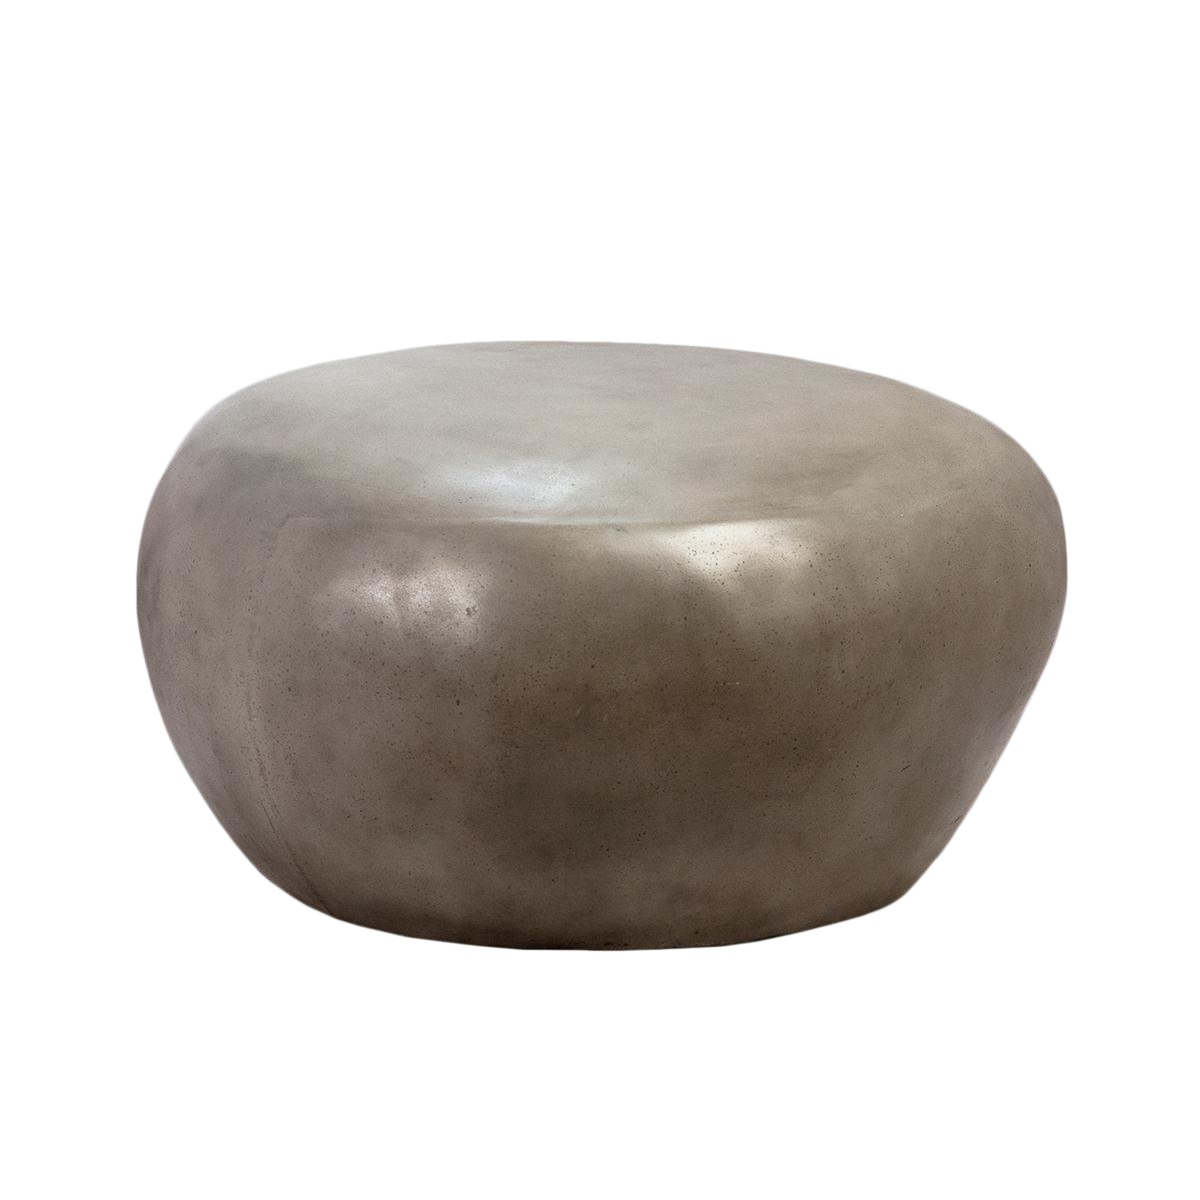 Organic Pebble Table For Sale